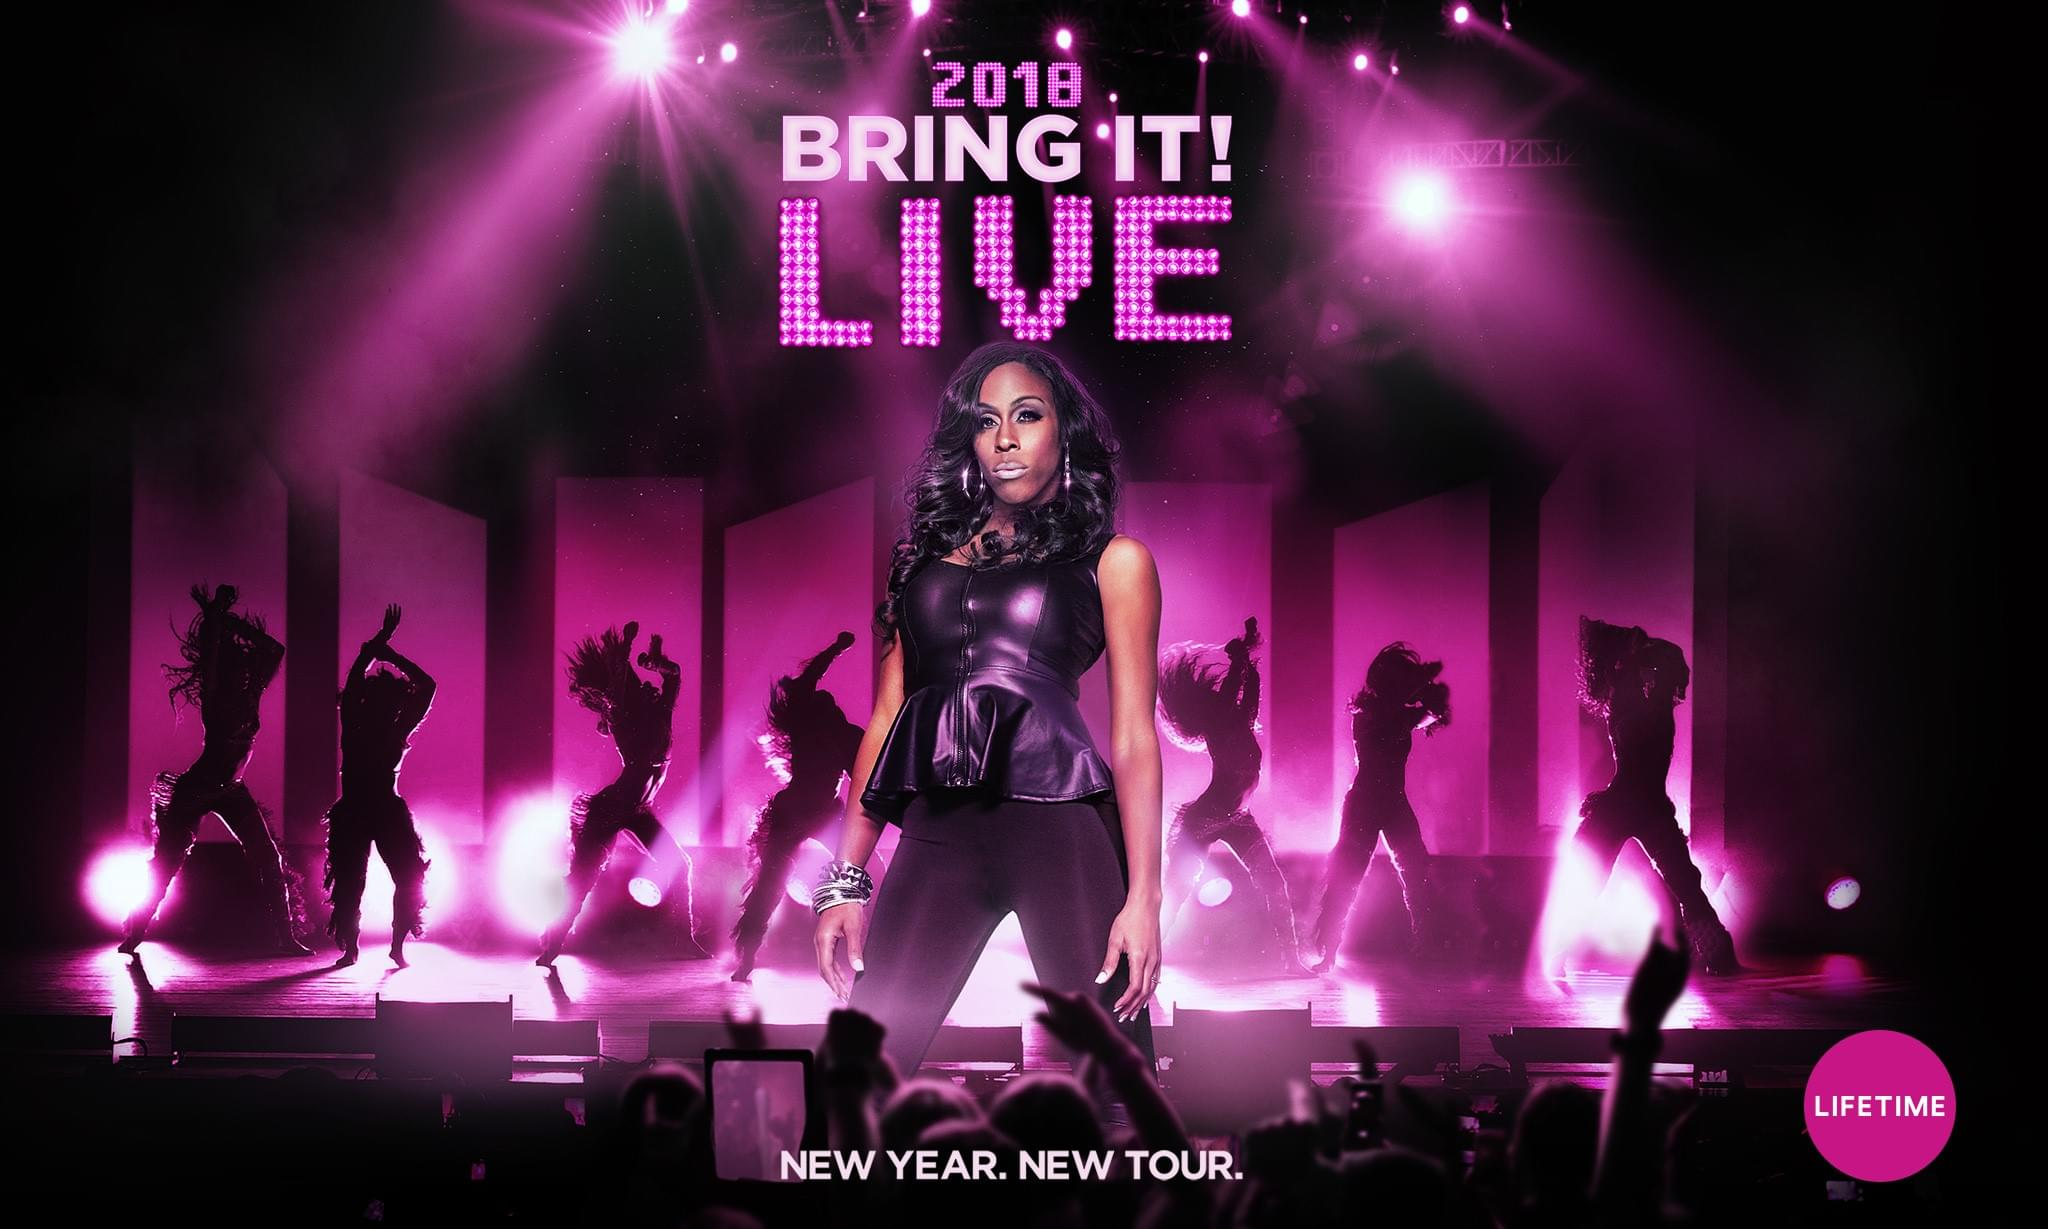 """LIFETIME'S HIT SERIES """"BRING IT"""" SET TO TAKE THE STAGE IN AN ALL-NEW SHOW ROBINSON PERFORMANCE HALL"""